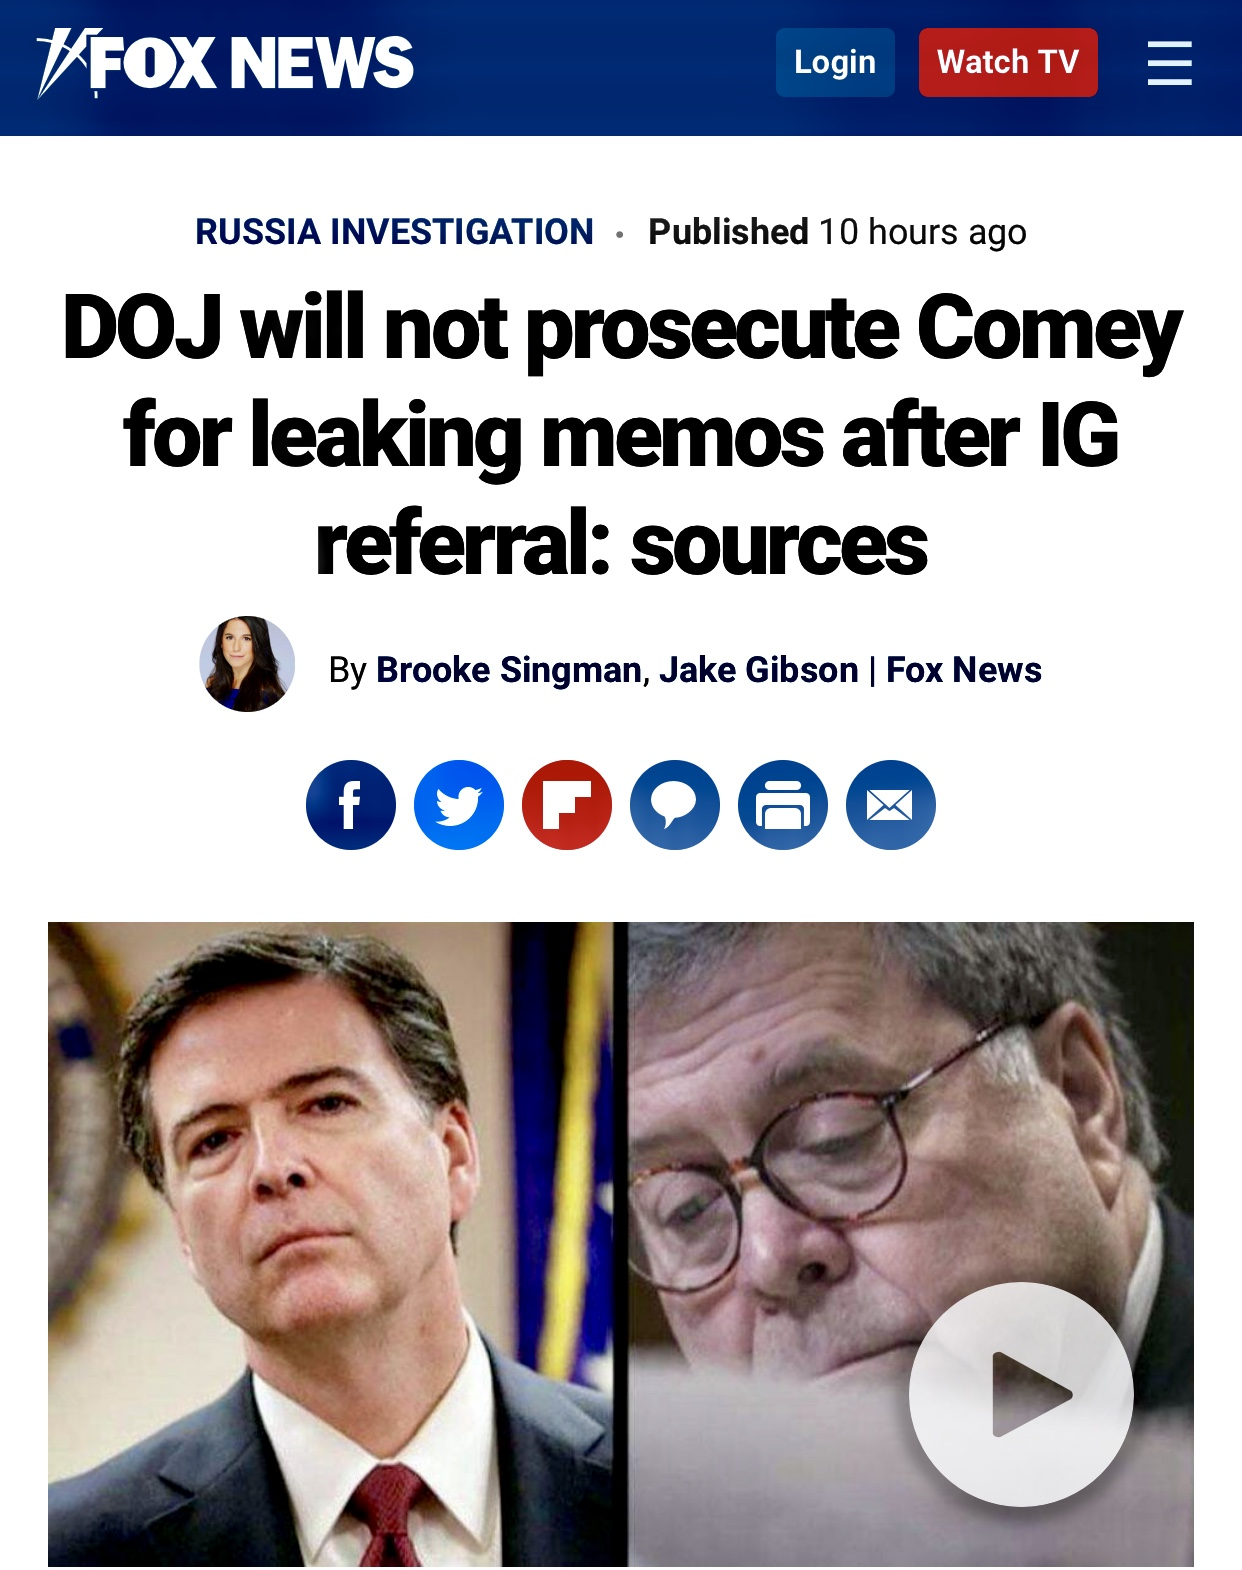 DOJ will not prosecute Comey for leaking memos after IG referral: sources | Fox News 130 Reads